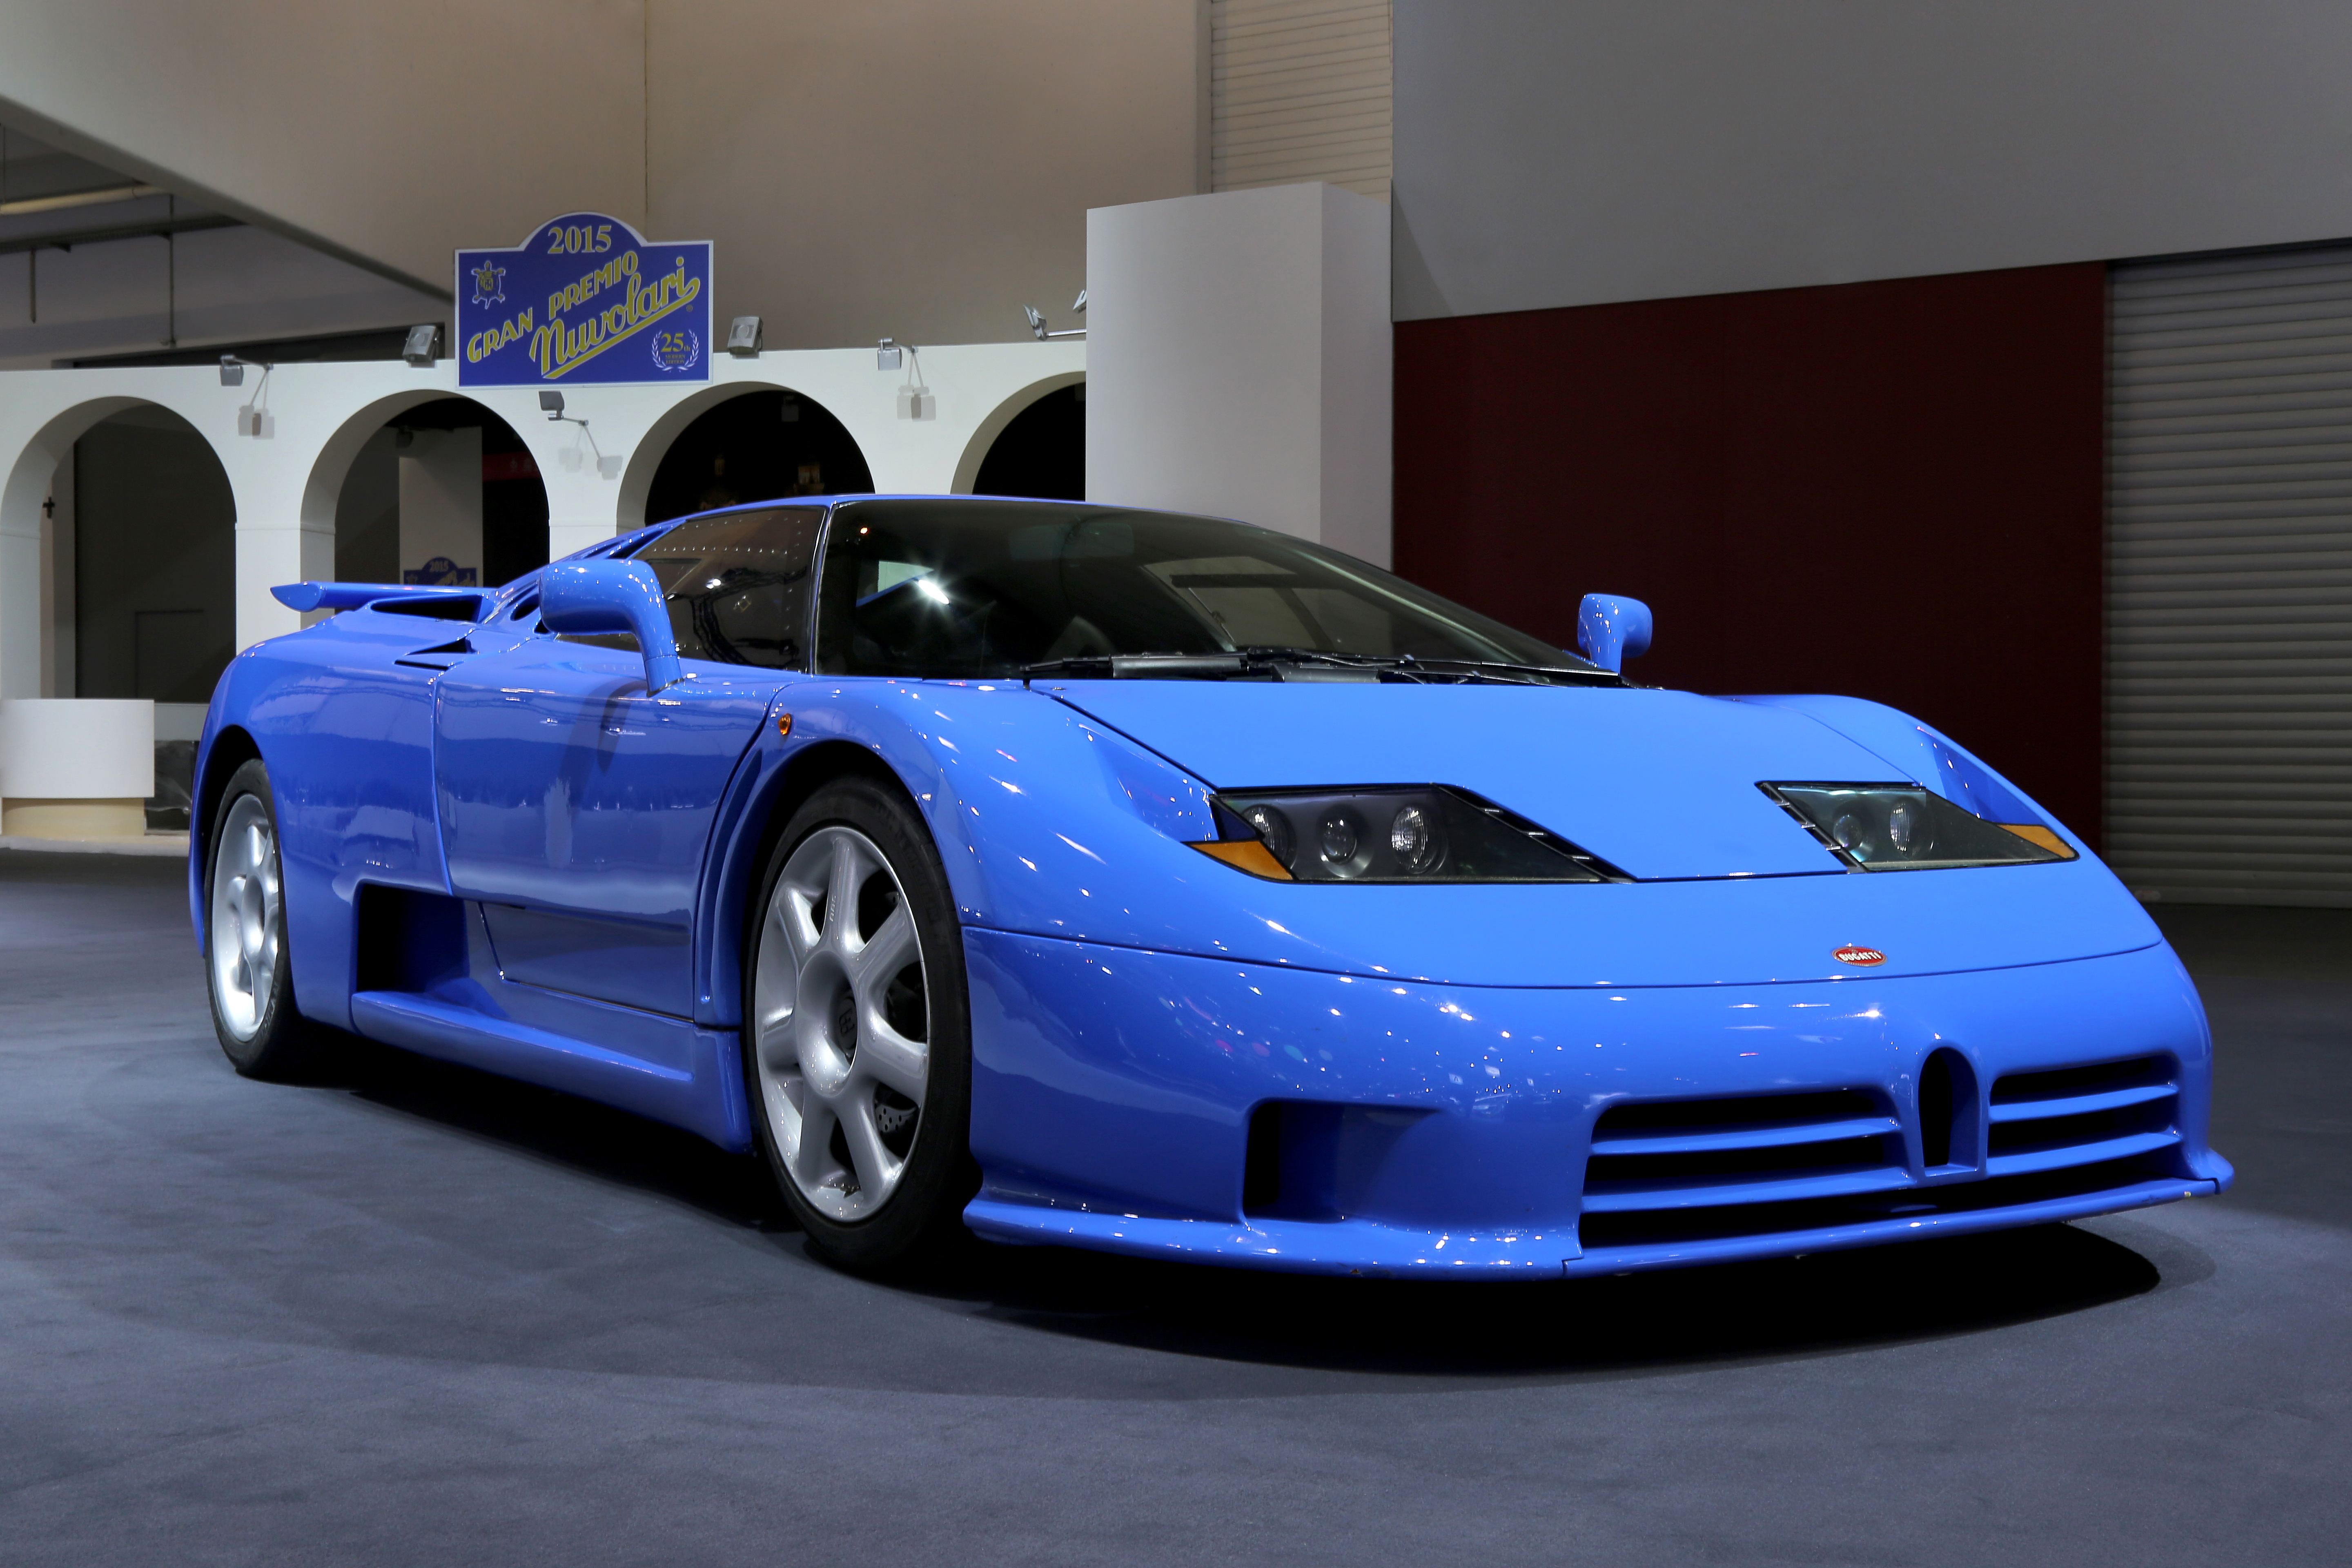 Bugatti EB 110S - Approximately 140 units of the EB 110 were built between 1991 and 1995.